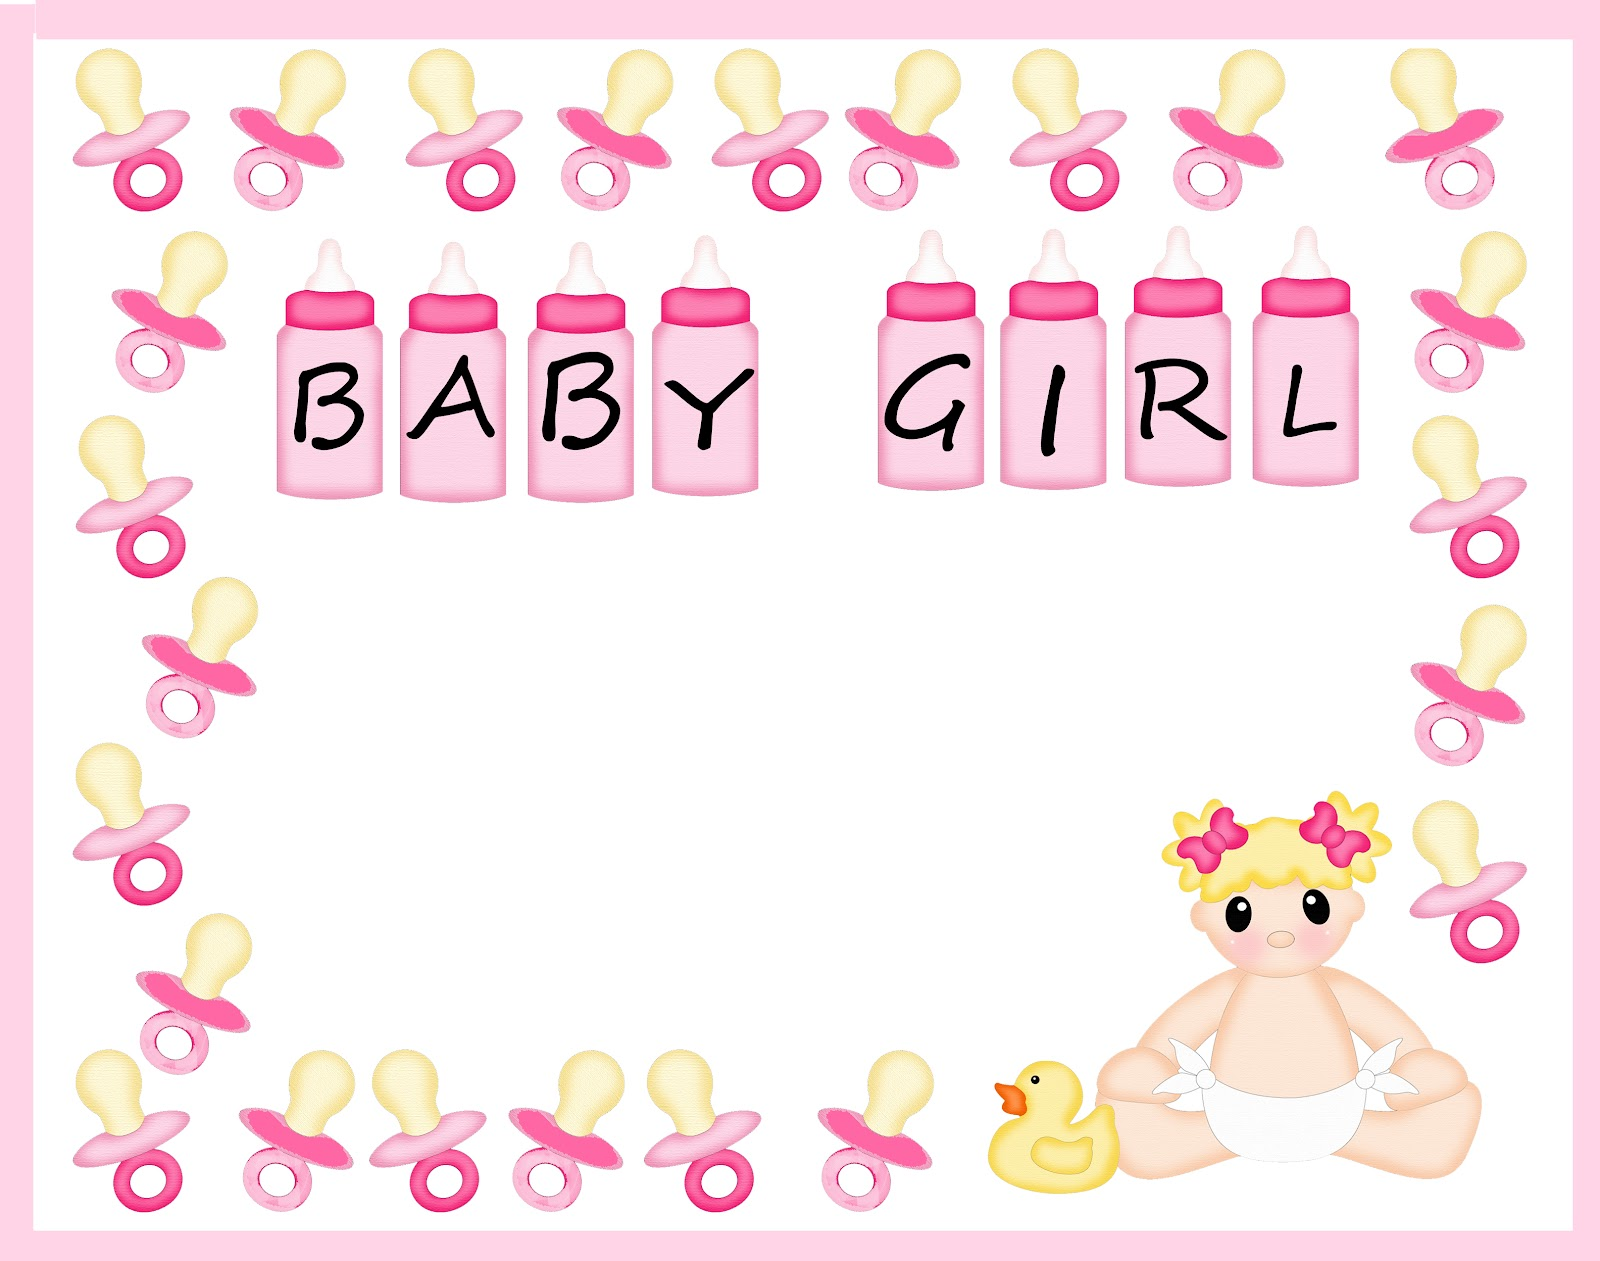 Free Baby Clipart Borders And Frames 20 Free Cliparts Download